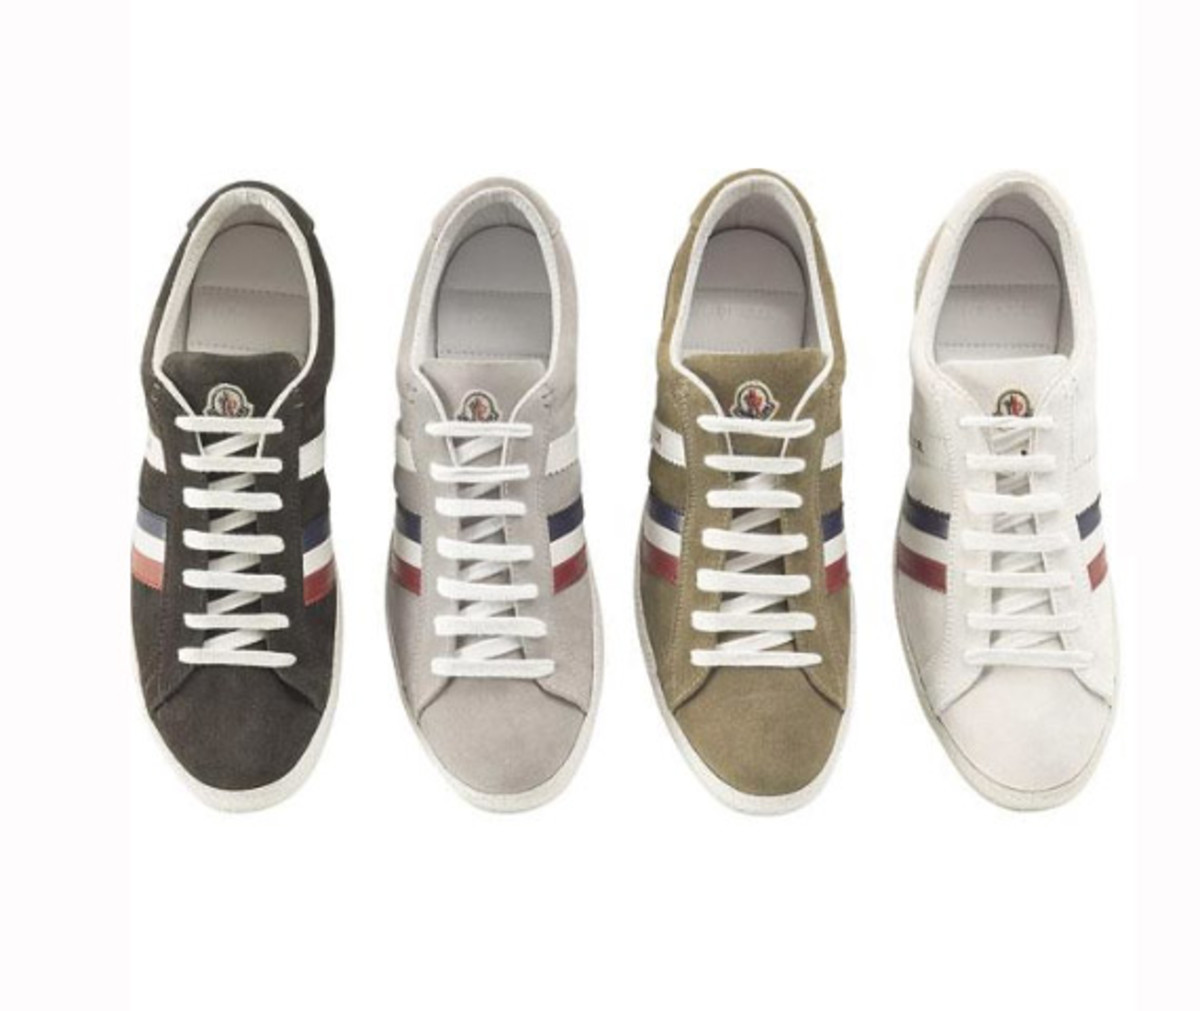 moncler-ss10-sneakers-collection-1